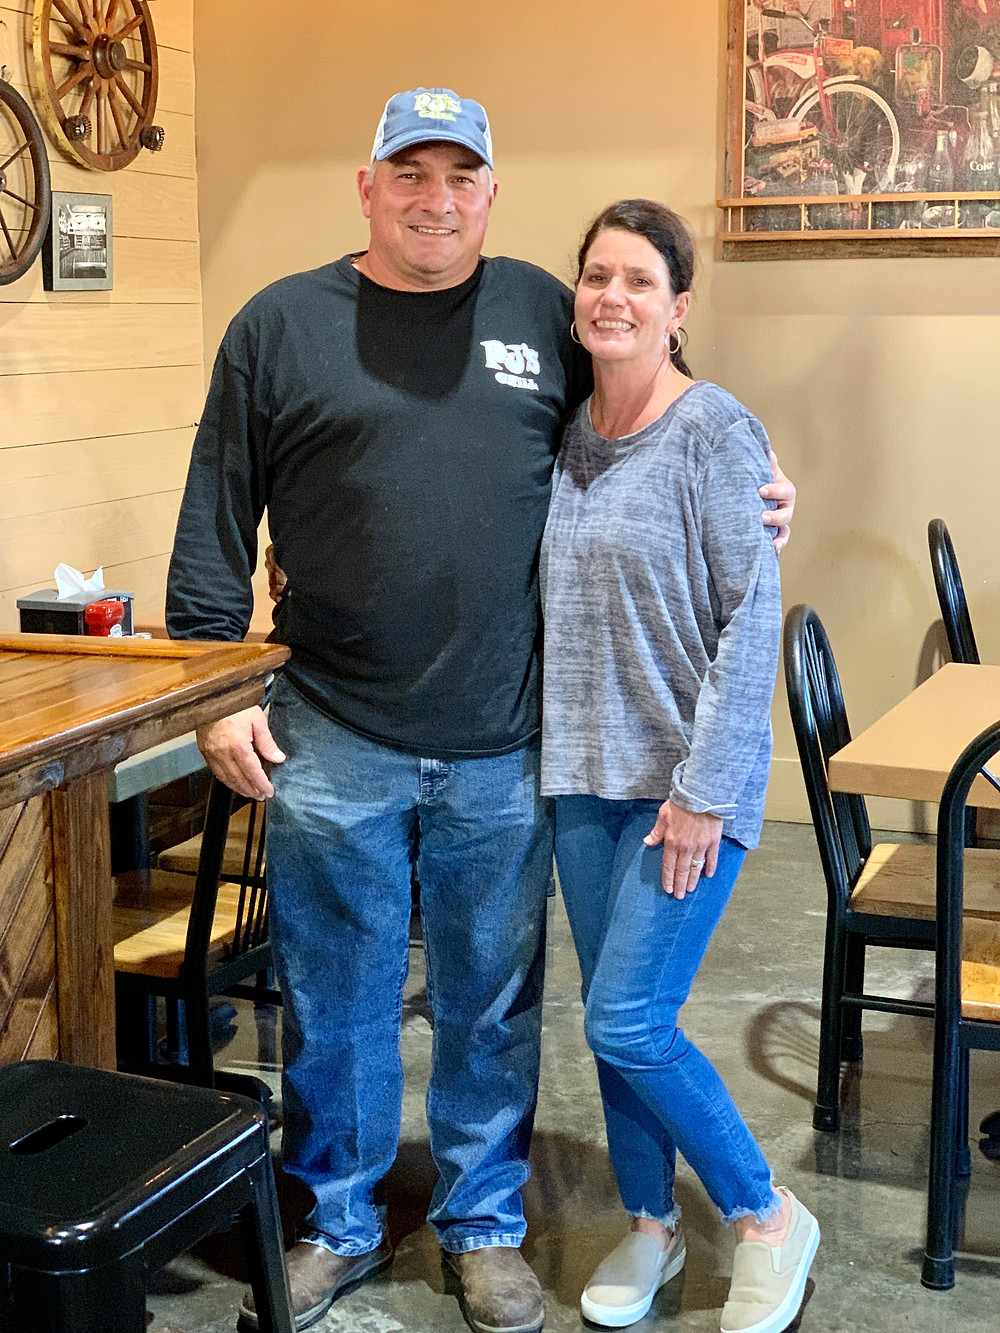 PJs Grill owners Peter and Stacie Boulet